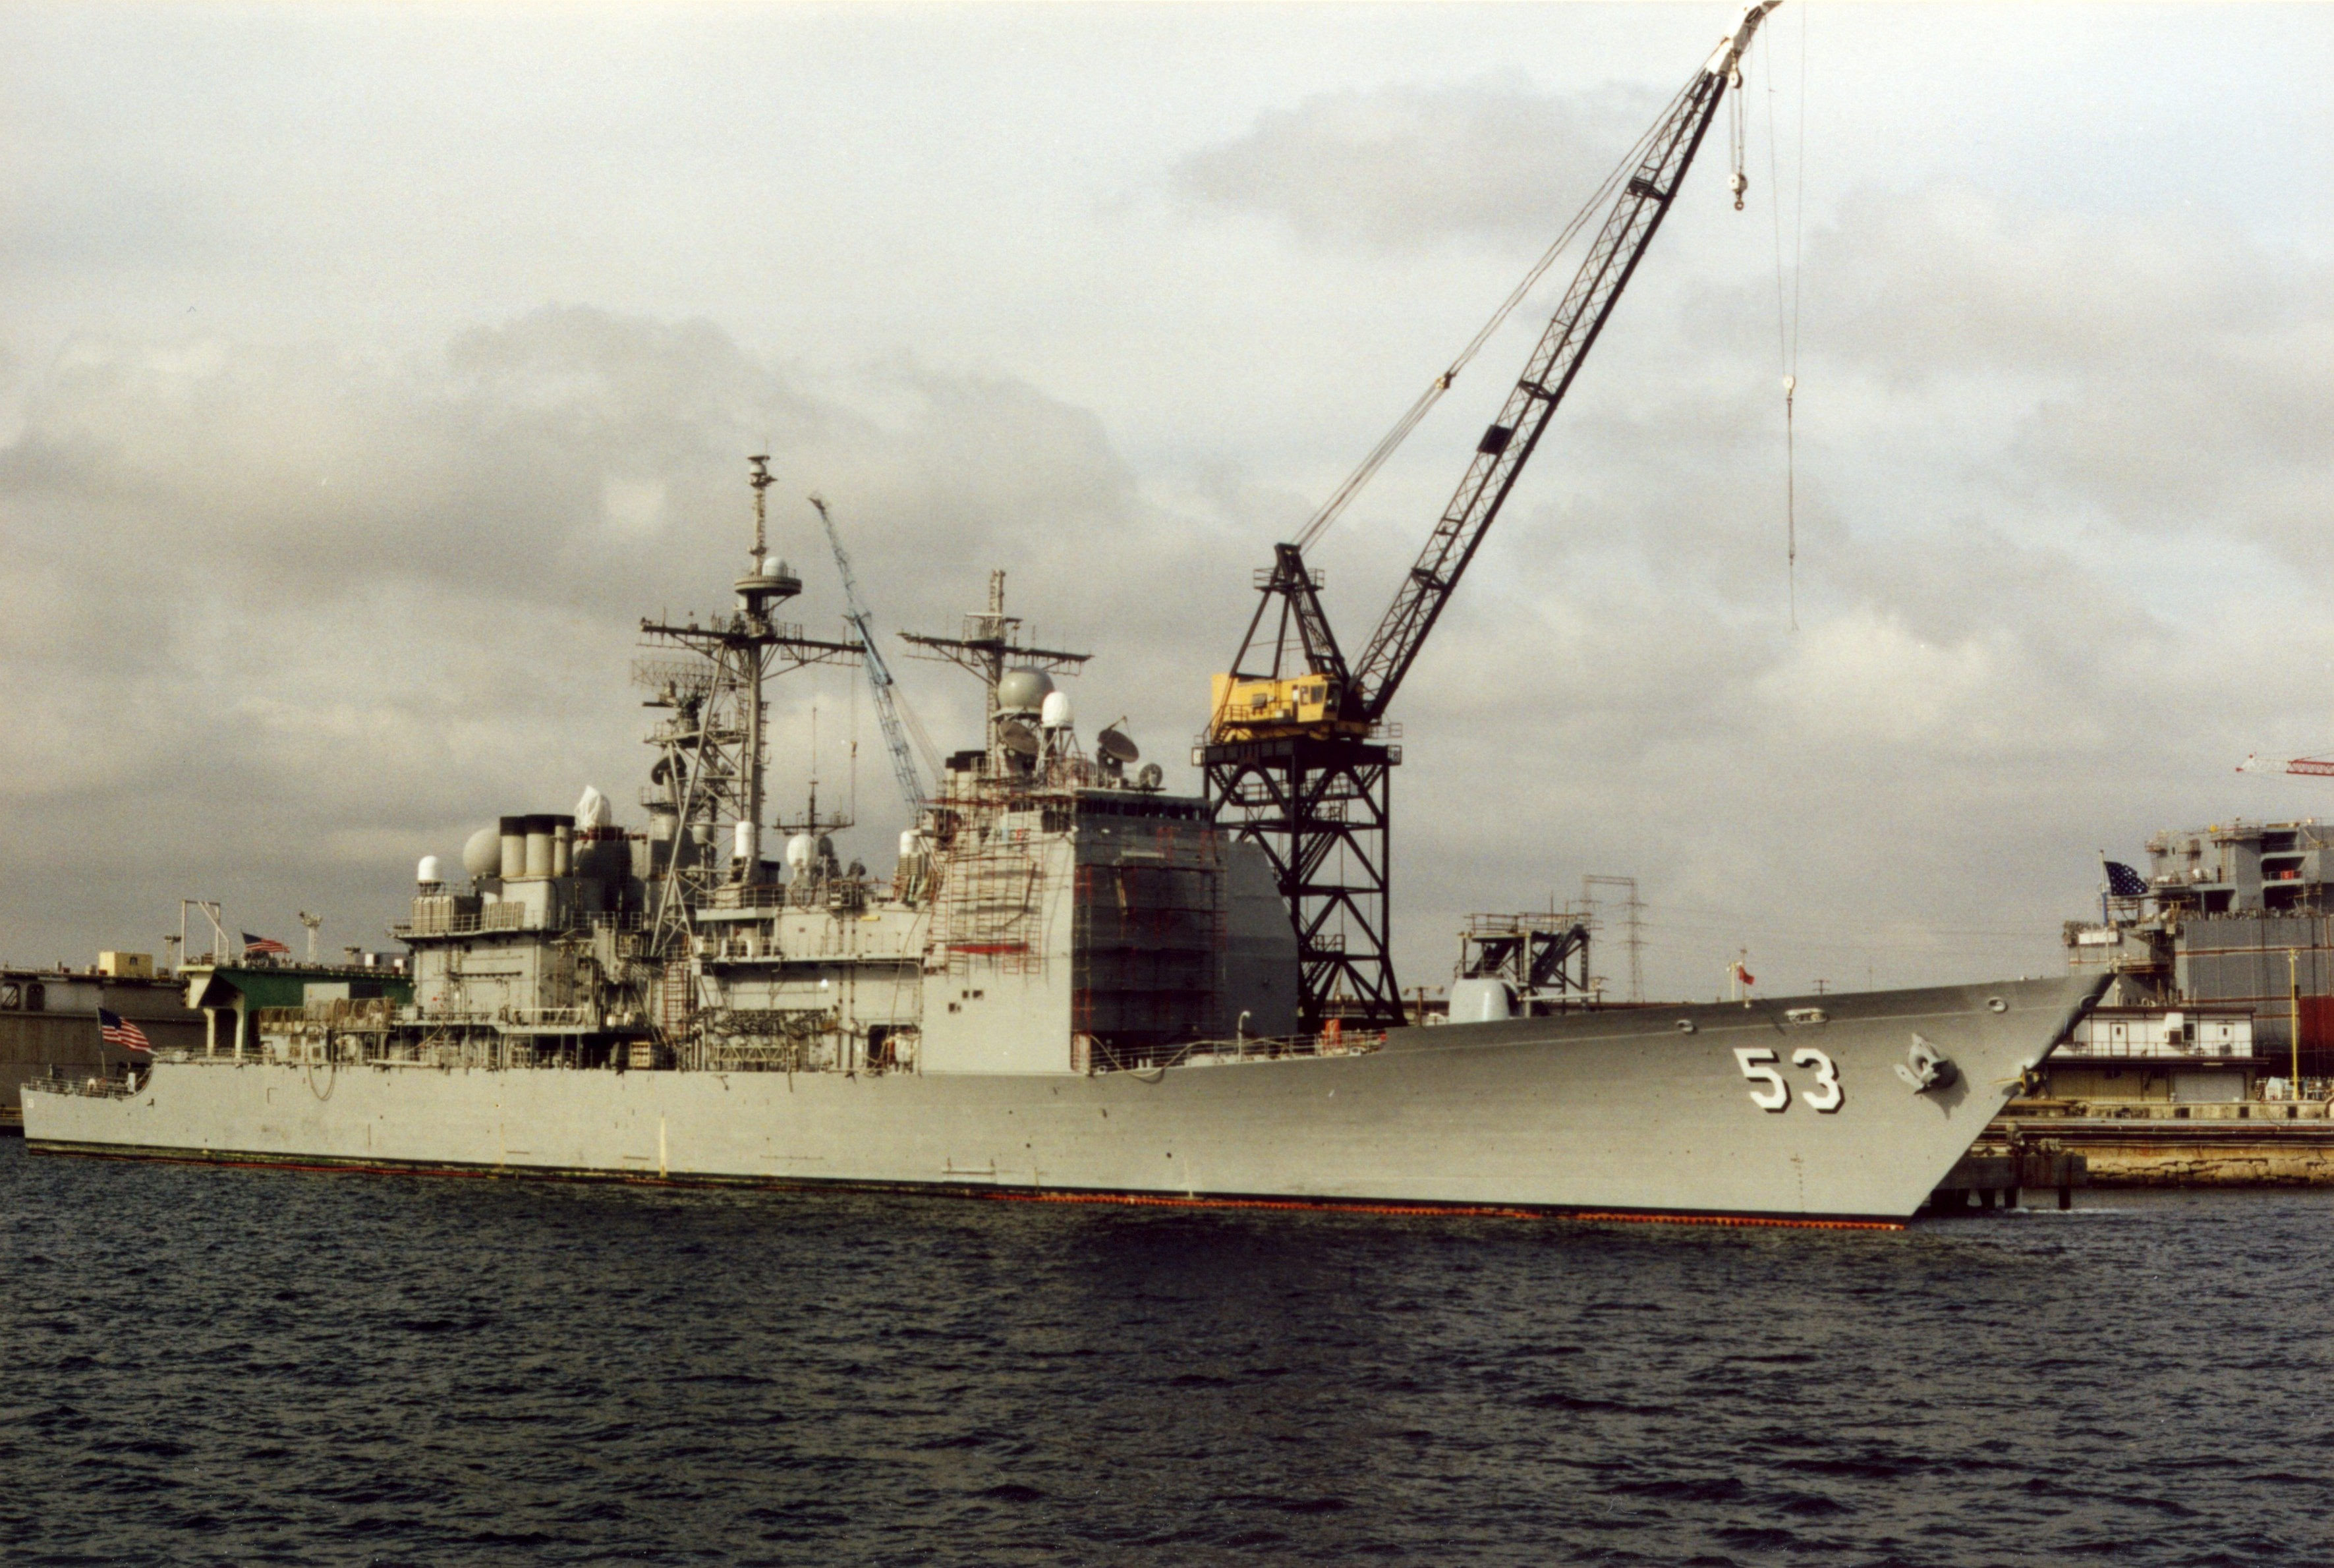 CG 53 Mobile Bay